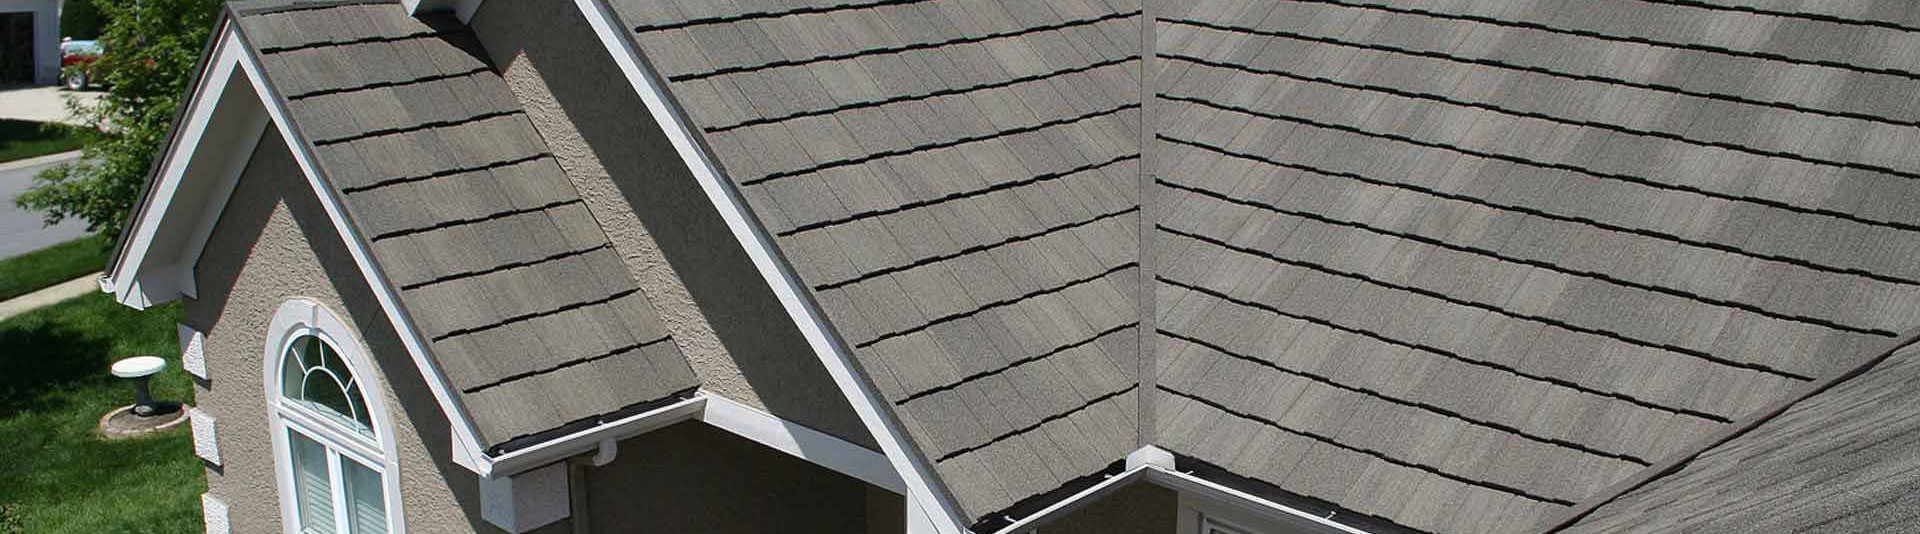 fox valley roofing